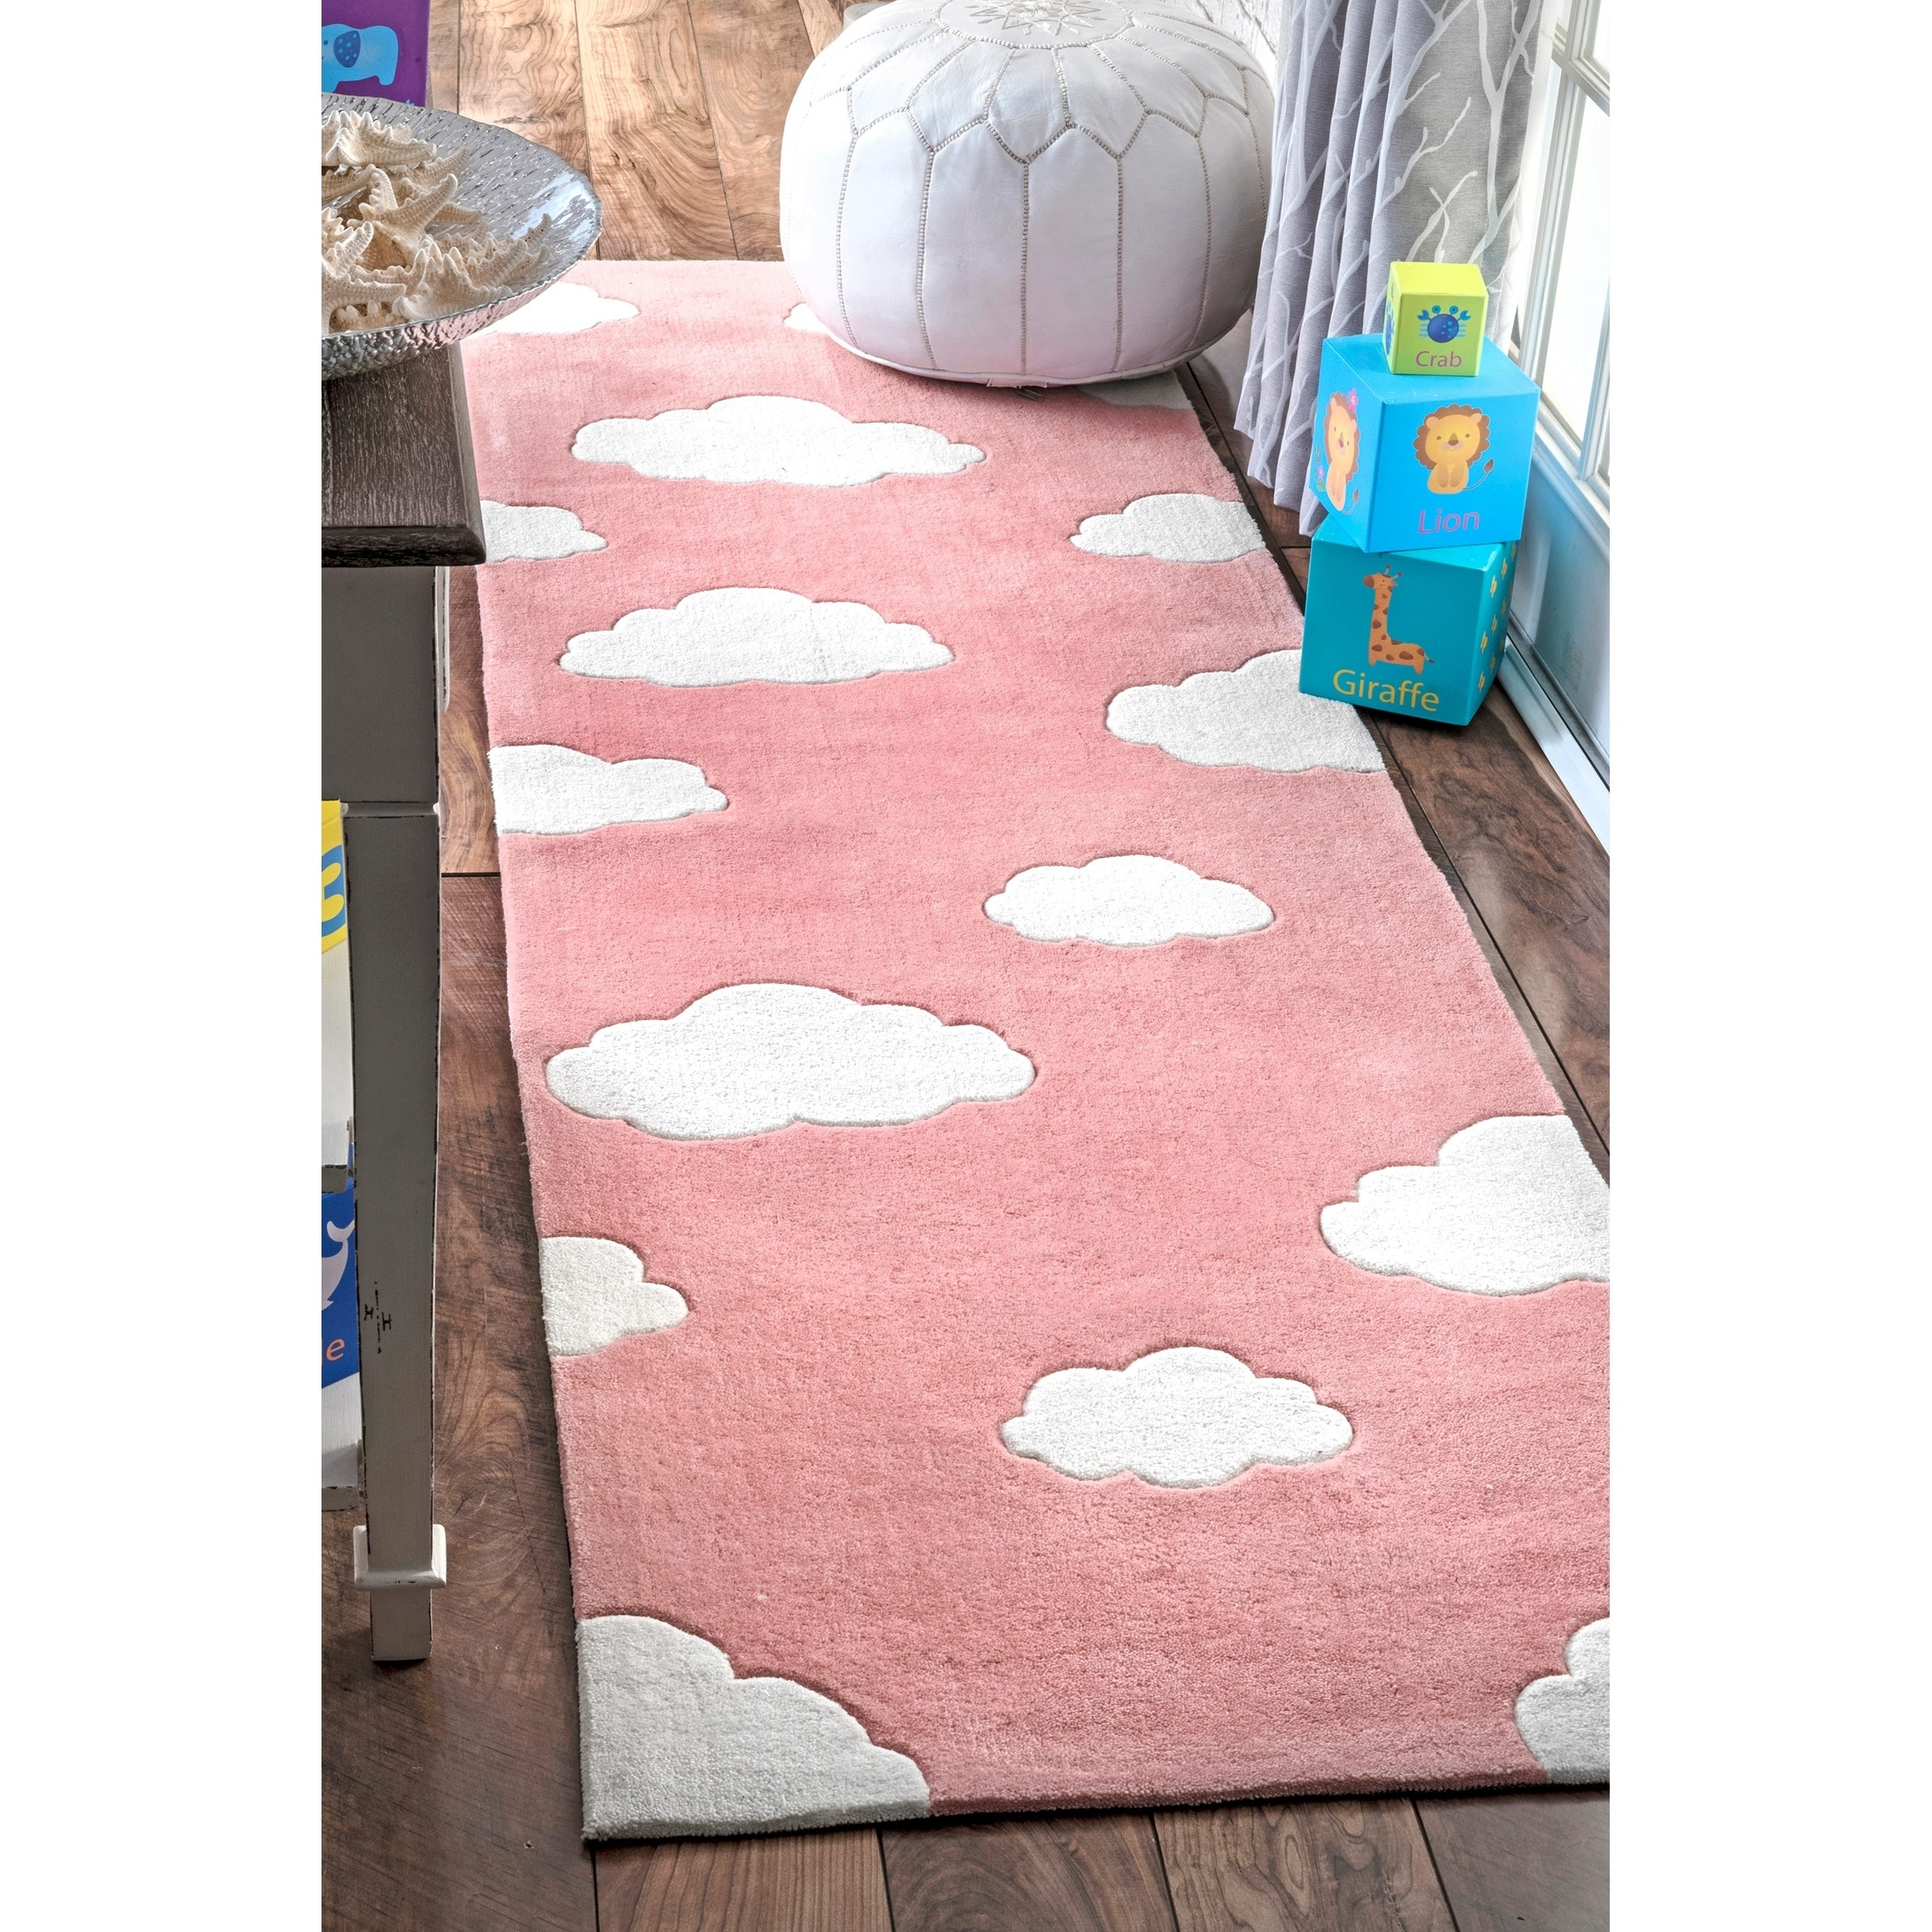 crib full awesome rug size idea nursery rugs of using area large for pink decorating glamorous baby round room chevron light white and ideas bedroom